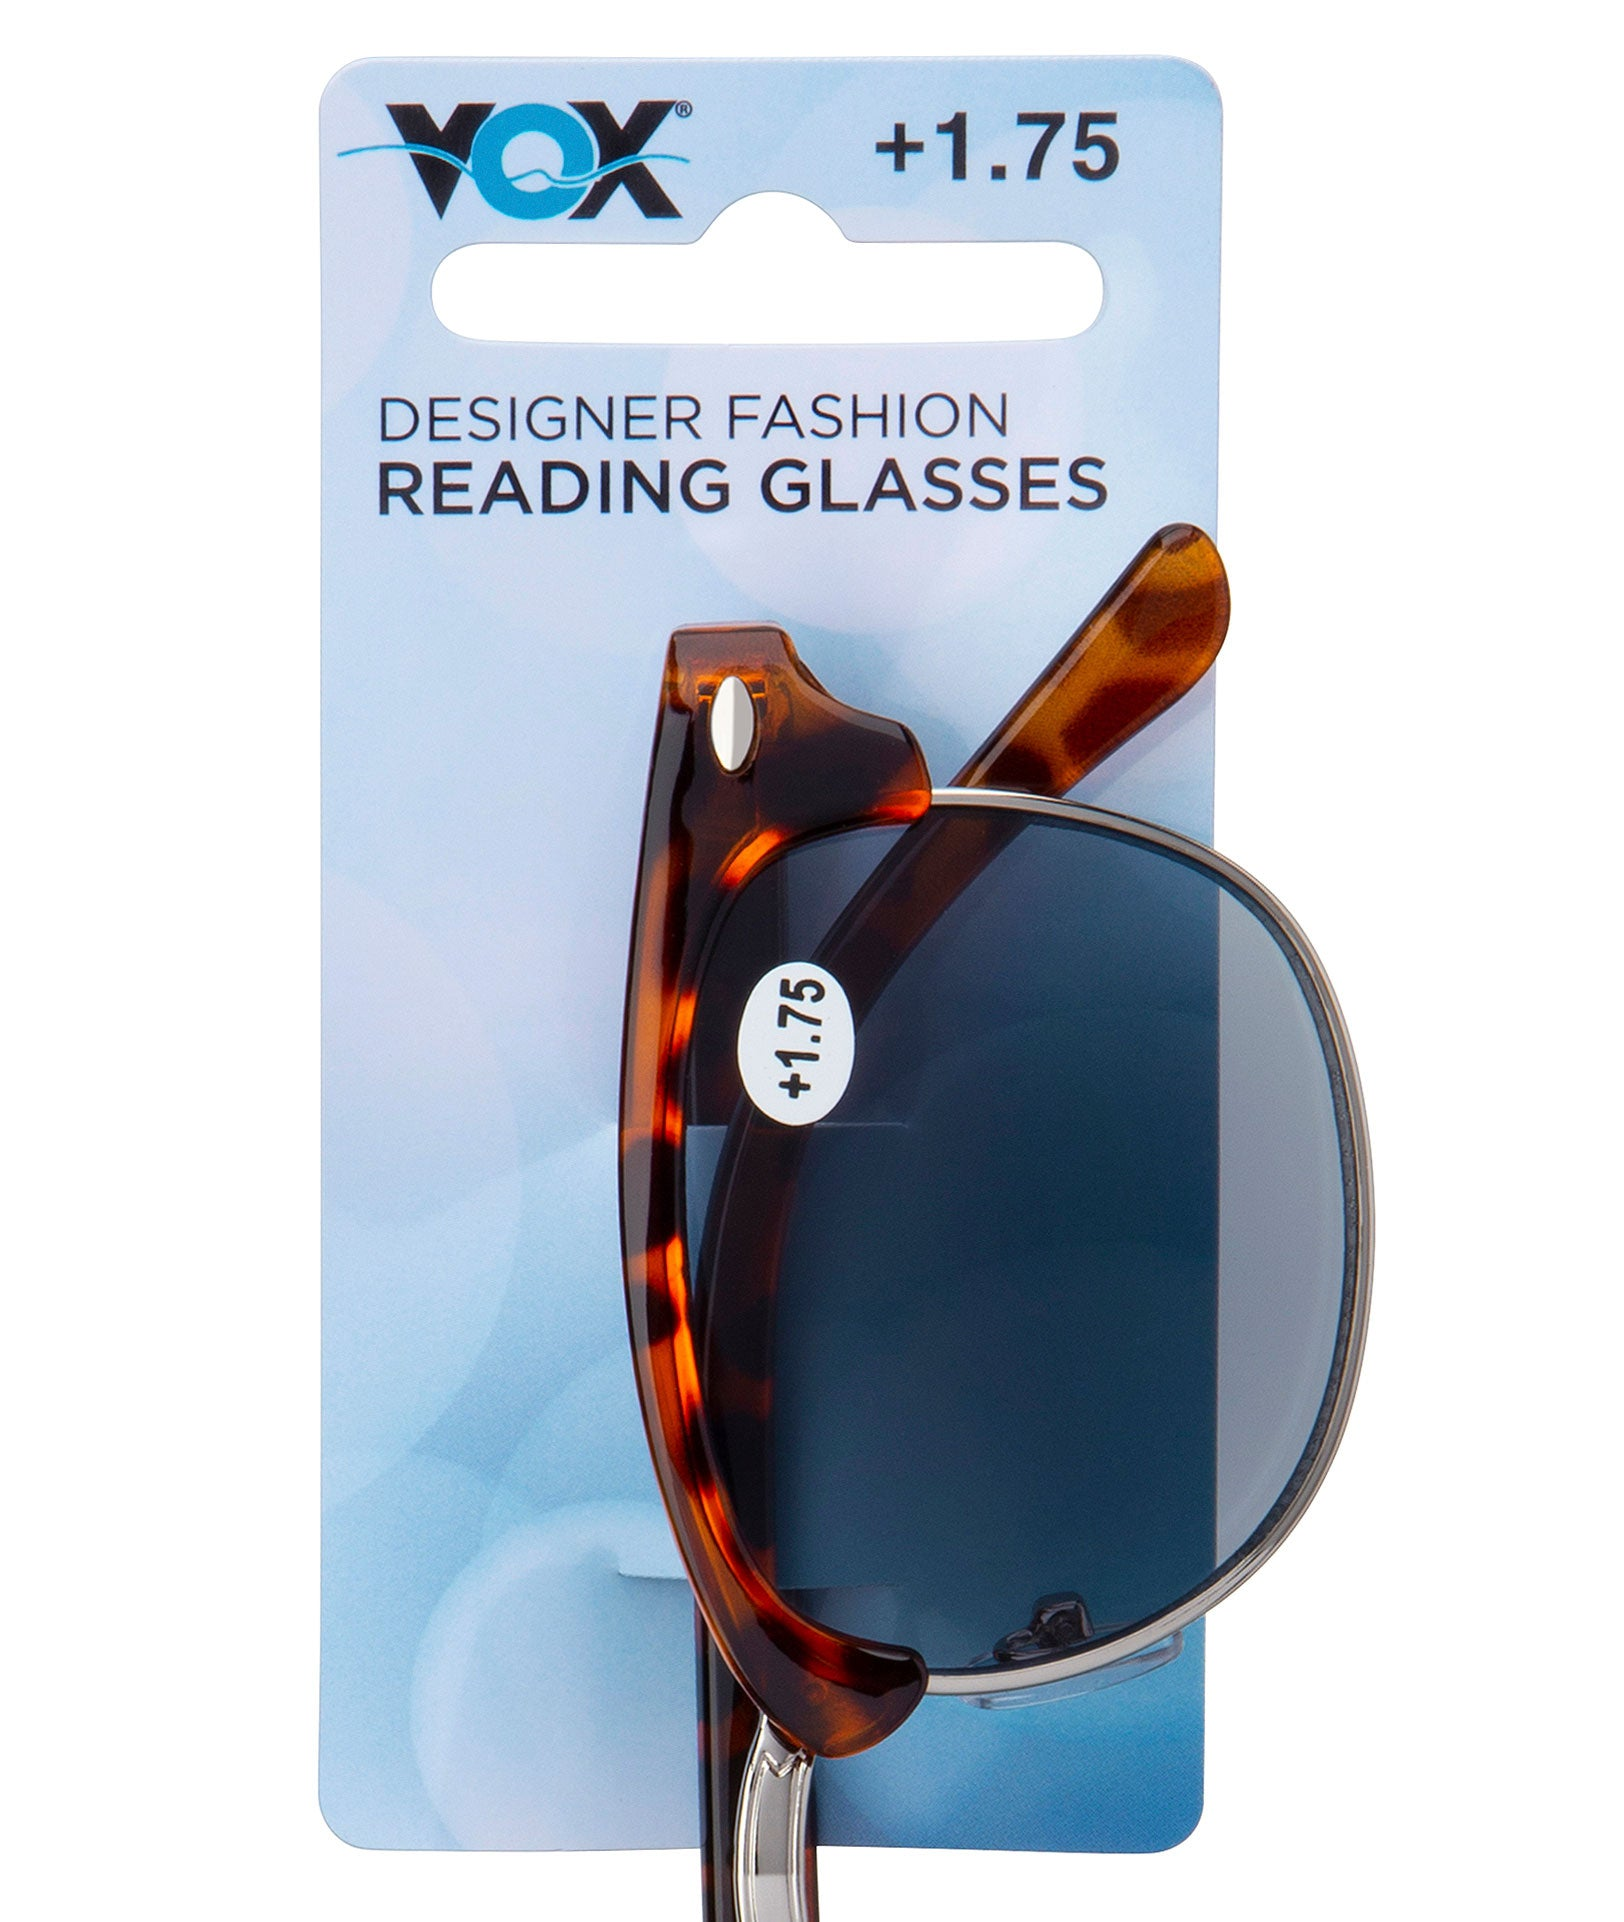 RG48 - Vox Reading Glasses Assorted Powers